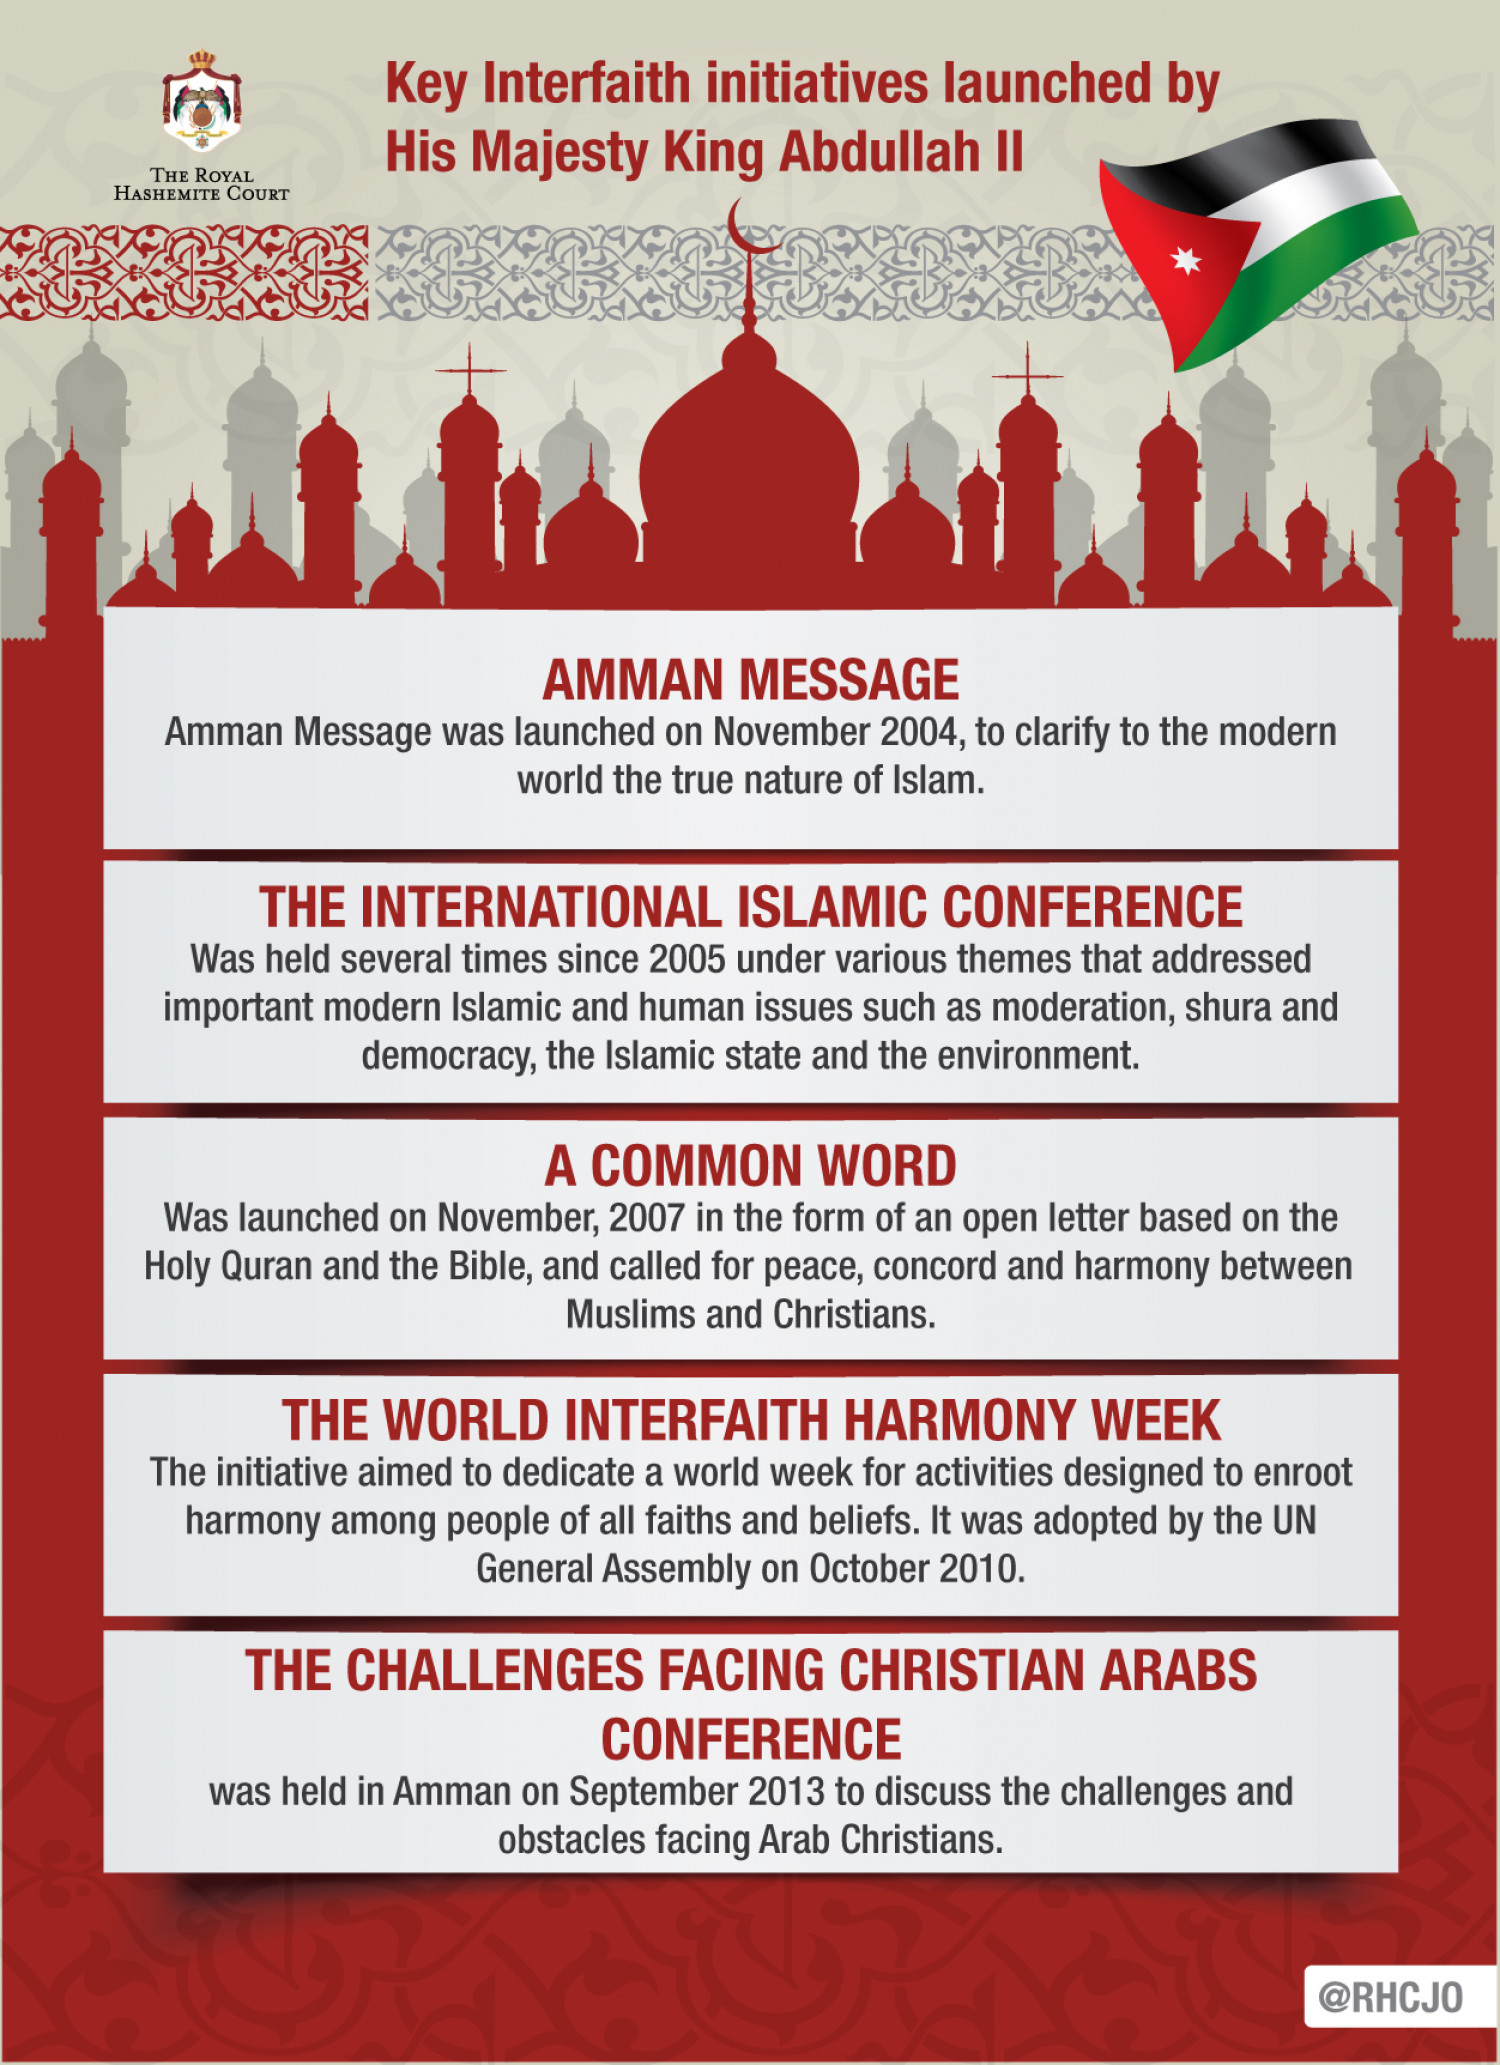 Key Interfaith initiatives launched by His Majesty King Abdullah II Infographic